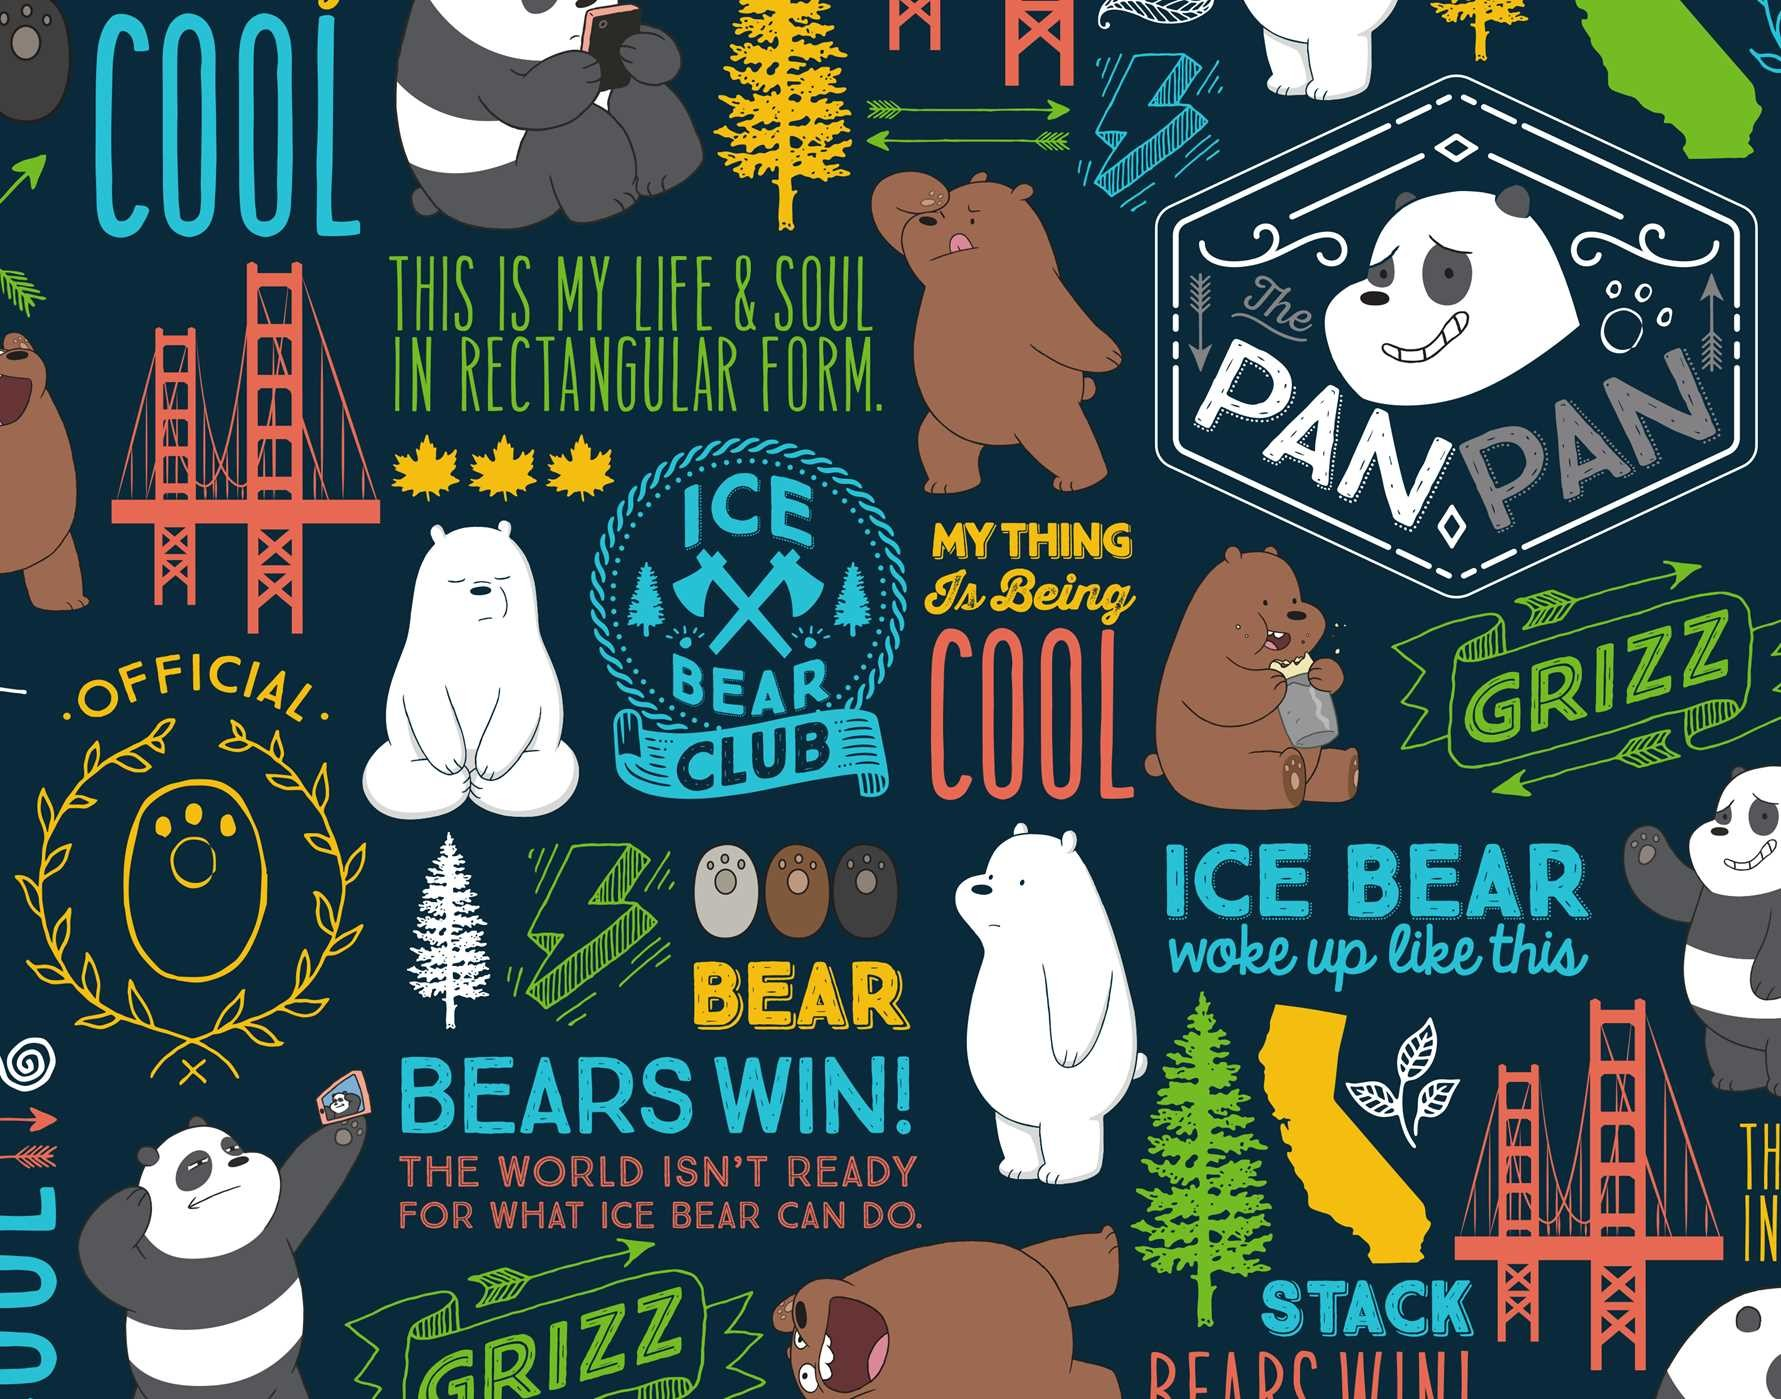 We Bare Bears Hardcover Ruled Journal Book By Insight Editions Official Publisher Page Simon Schuster